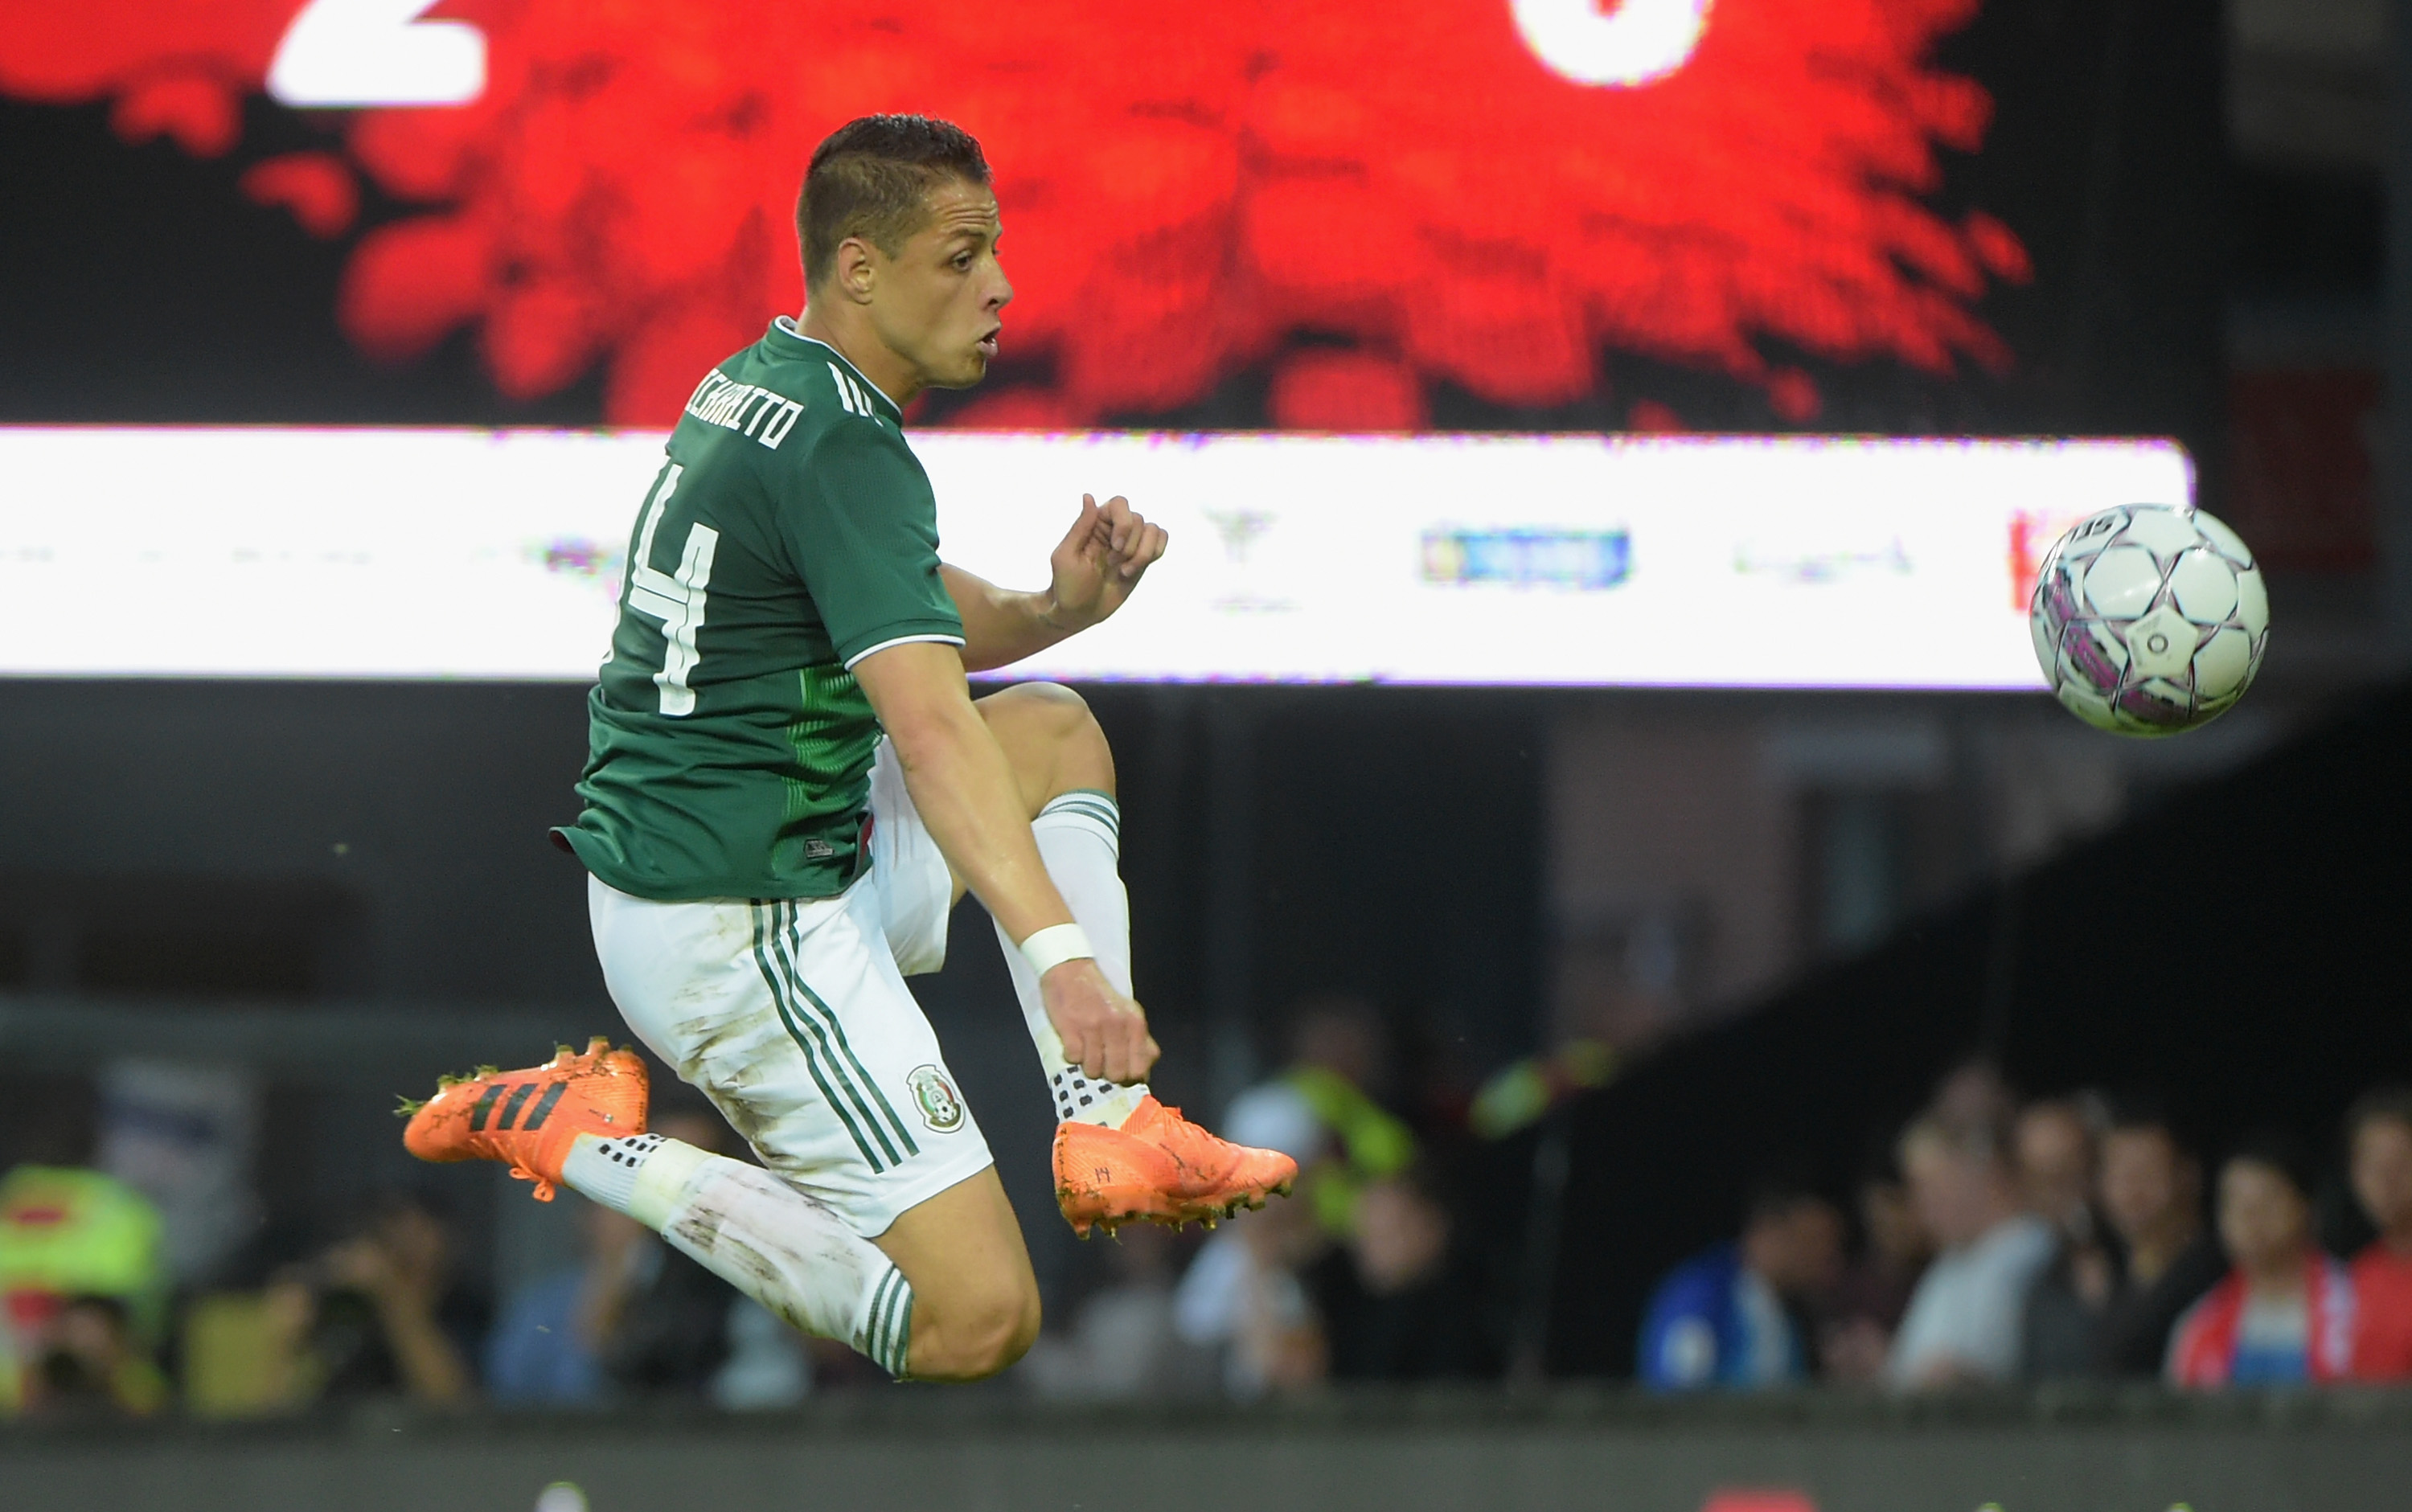 VIDEO: The evolution of ball striking with Javier Hernandez